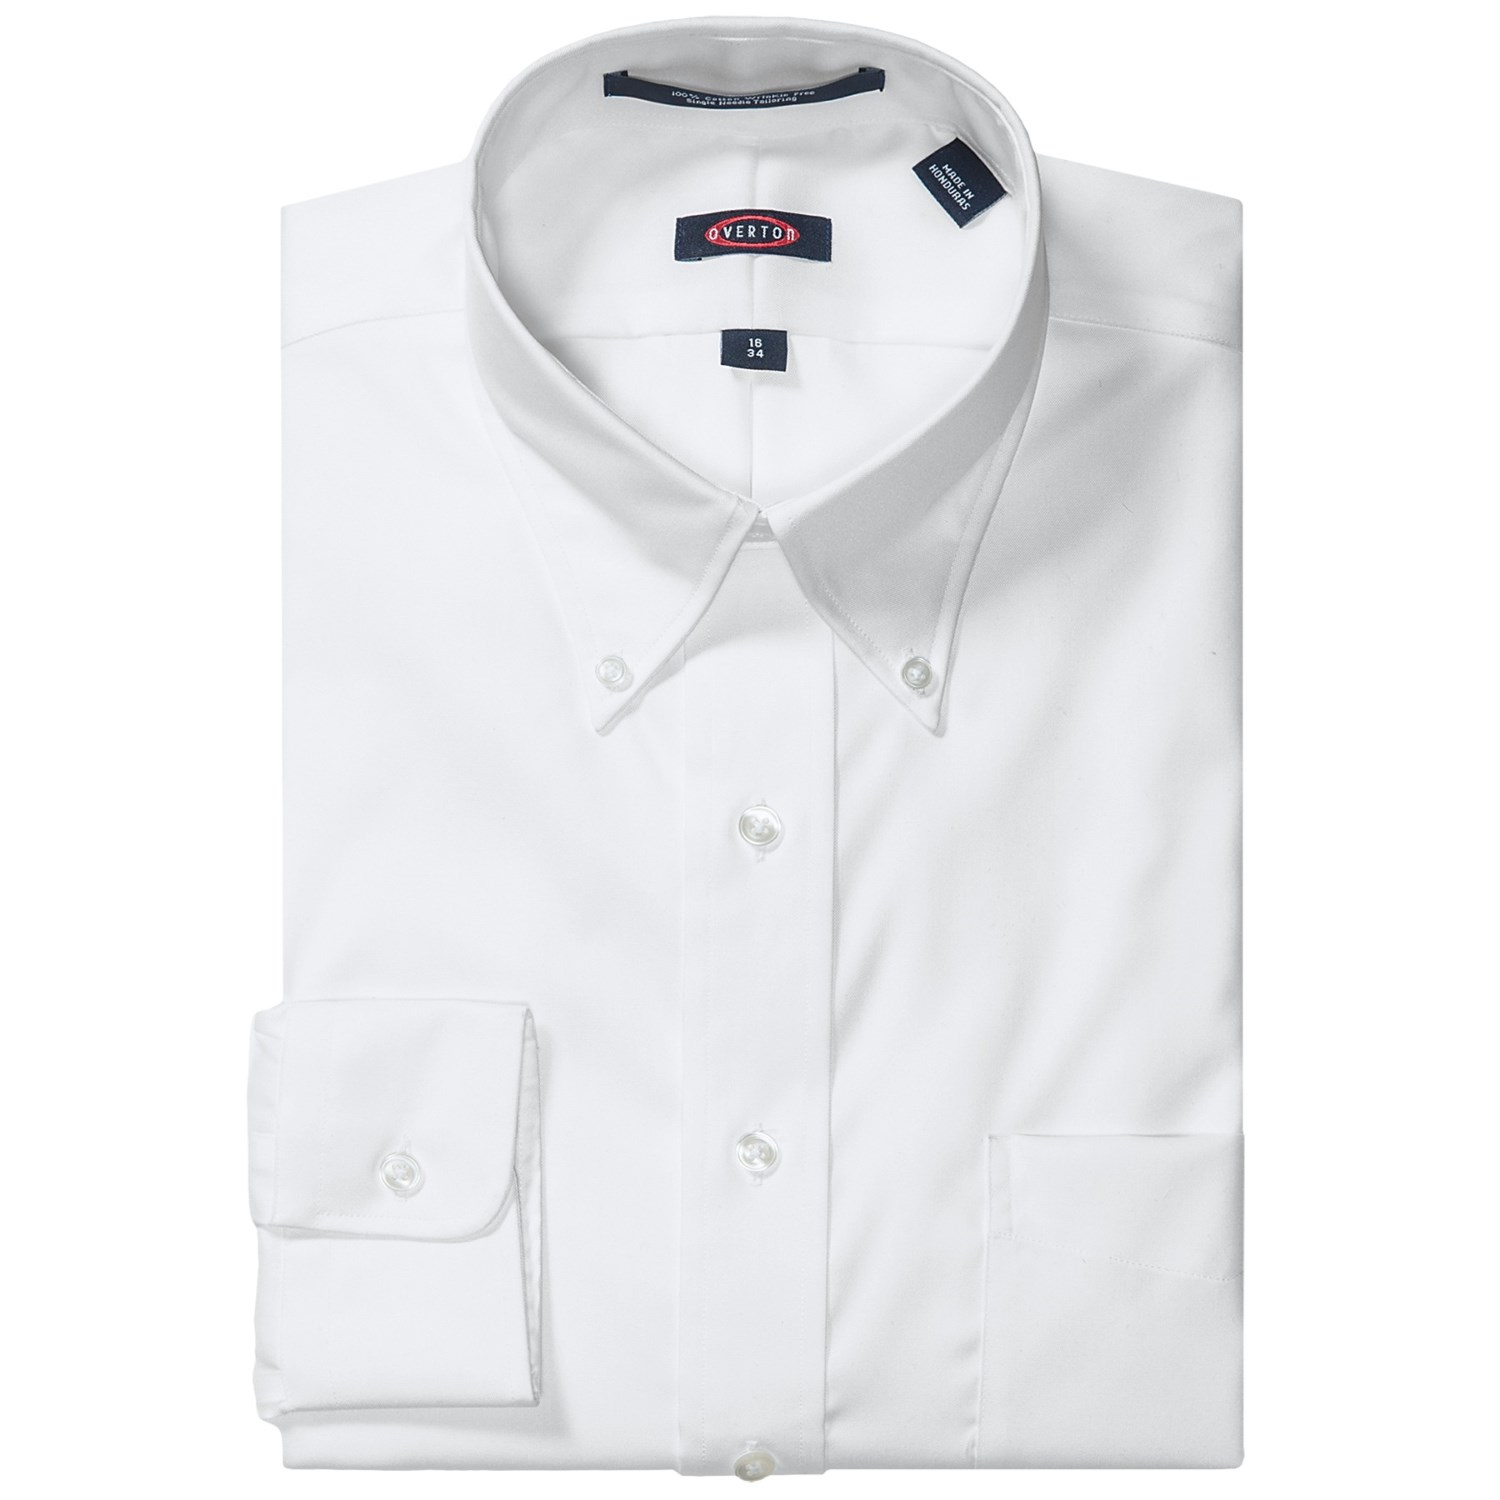 Overton wrinkle free pinpoint cotton shirt button down for Wrinkle free button down shirts